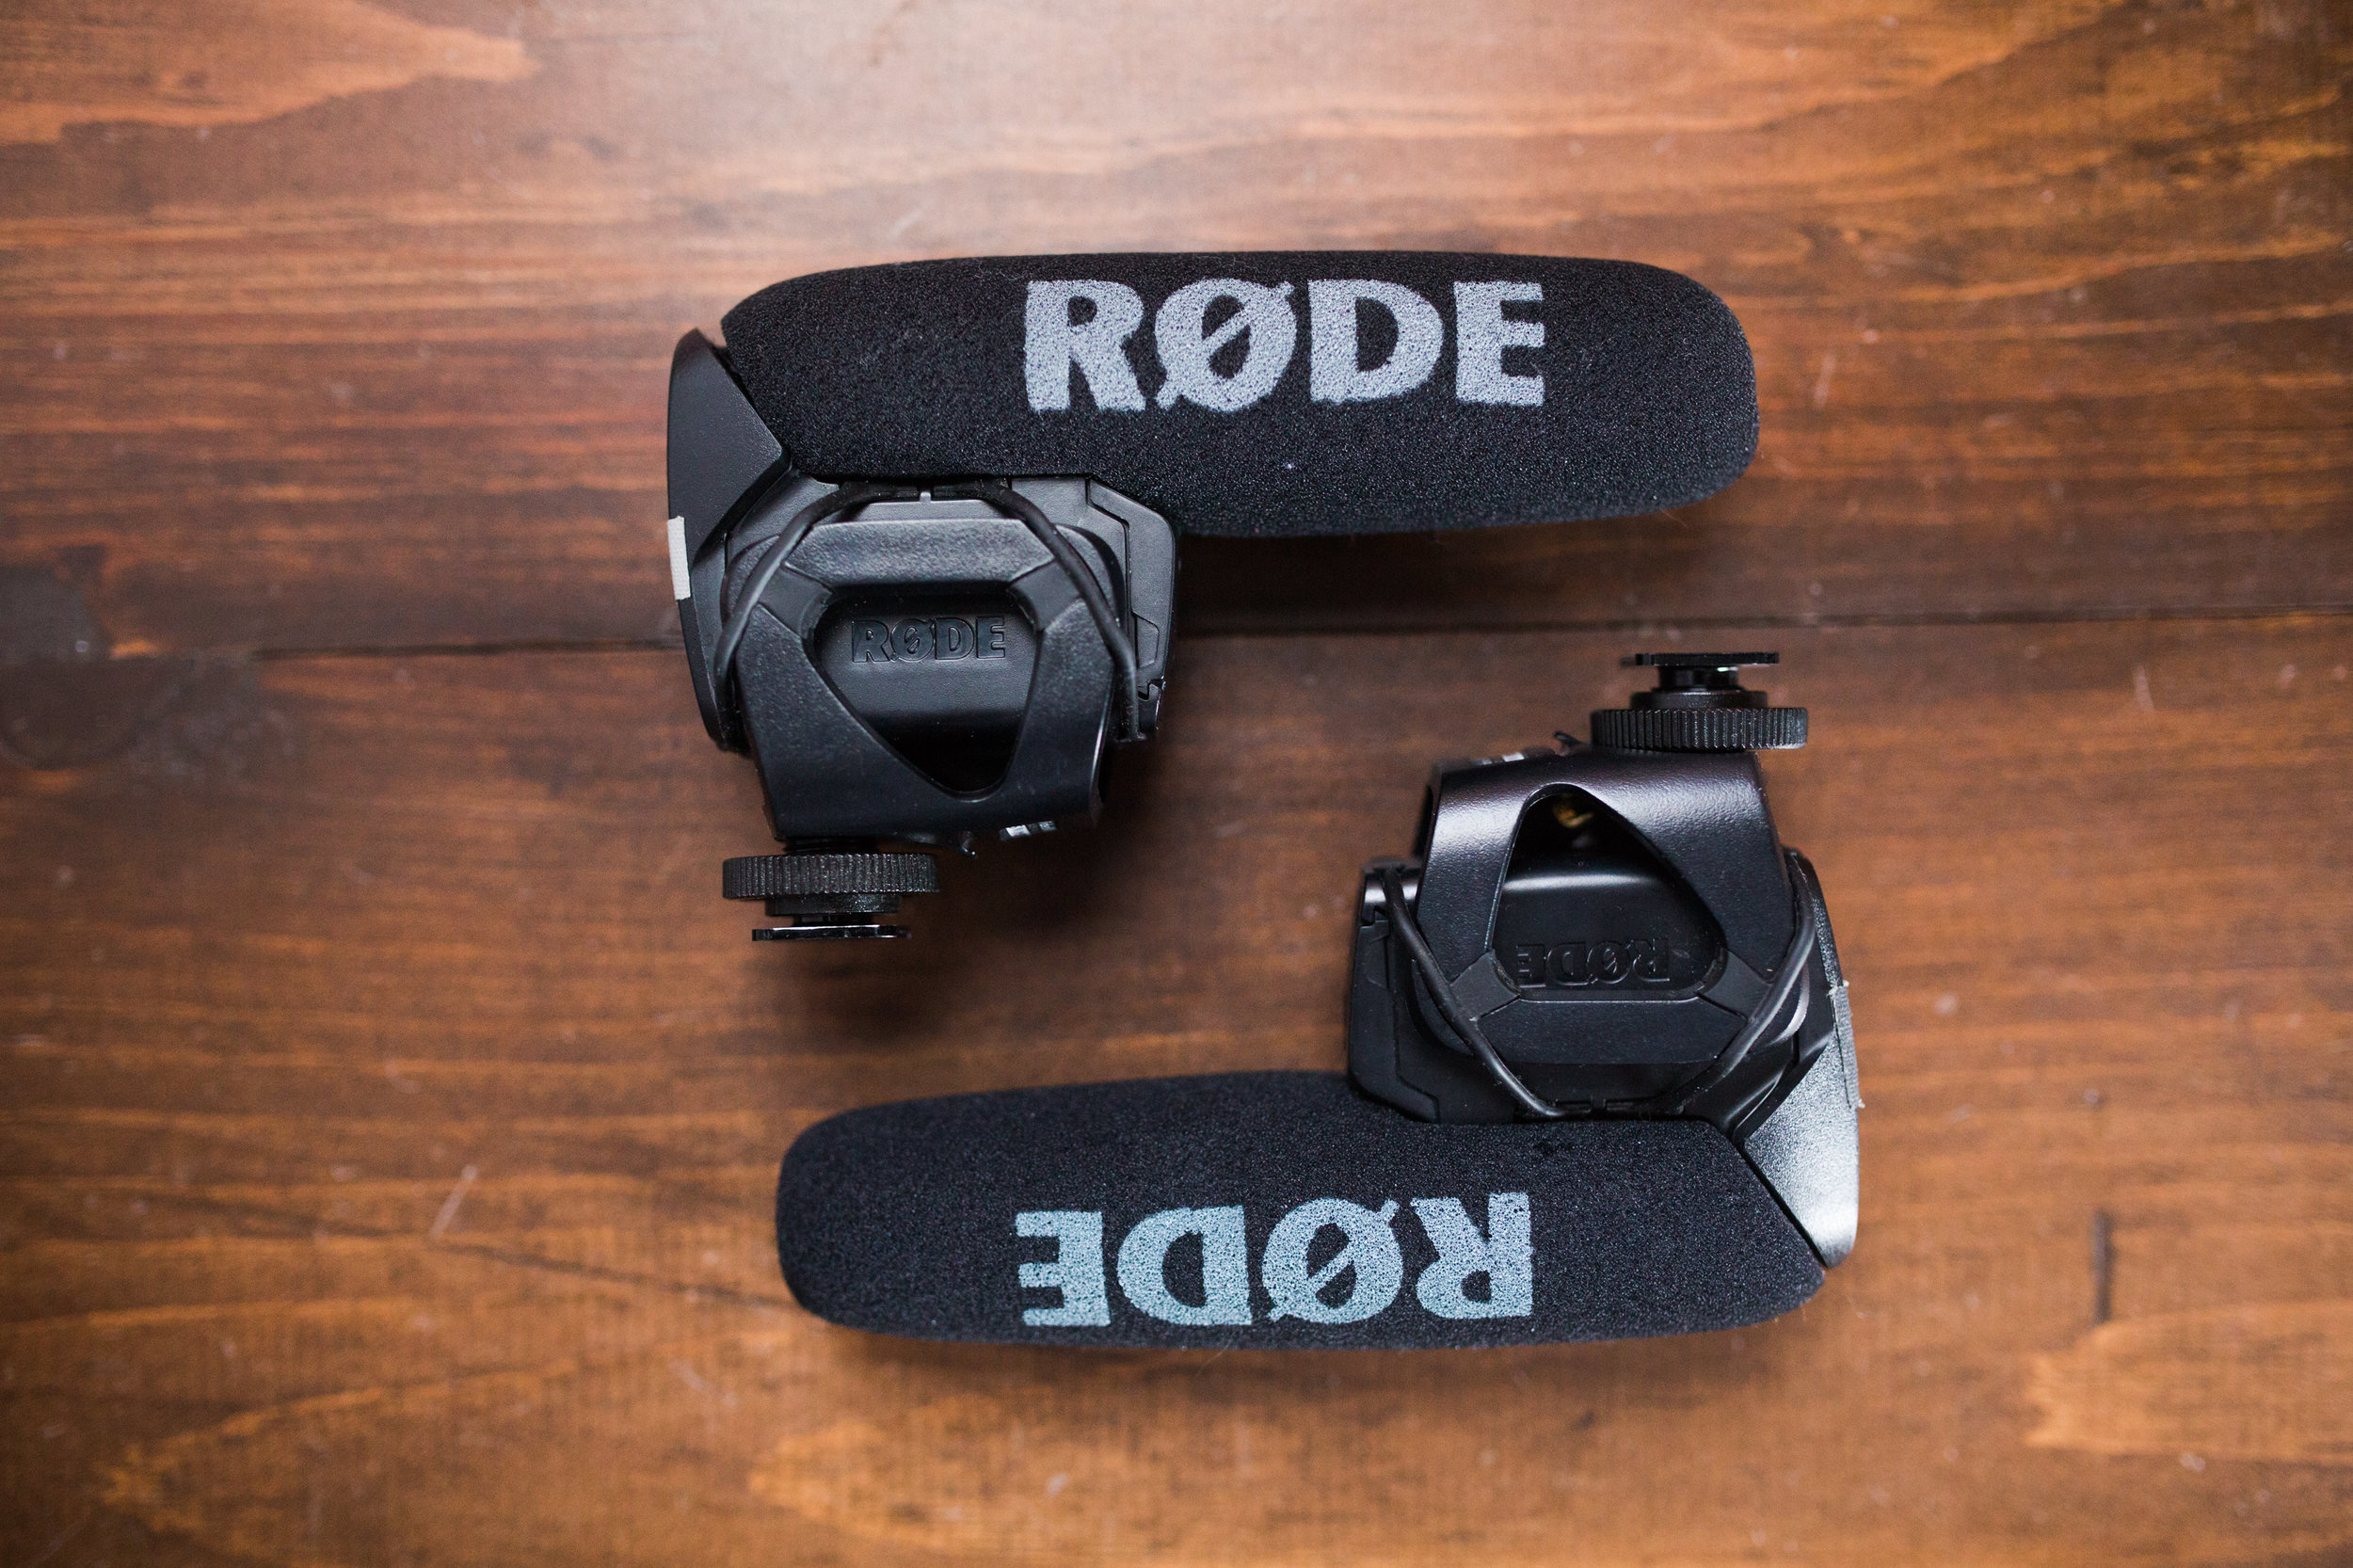 The Rode VideoMic Pro's are perfect for wedding filmmaking.  I put one on each of the C100's.  They are great for capturing audio throughout the day and I will even use them in a pinch for critical audio like a letter reading.